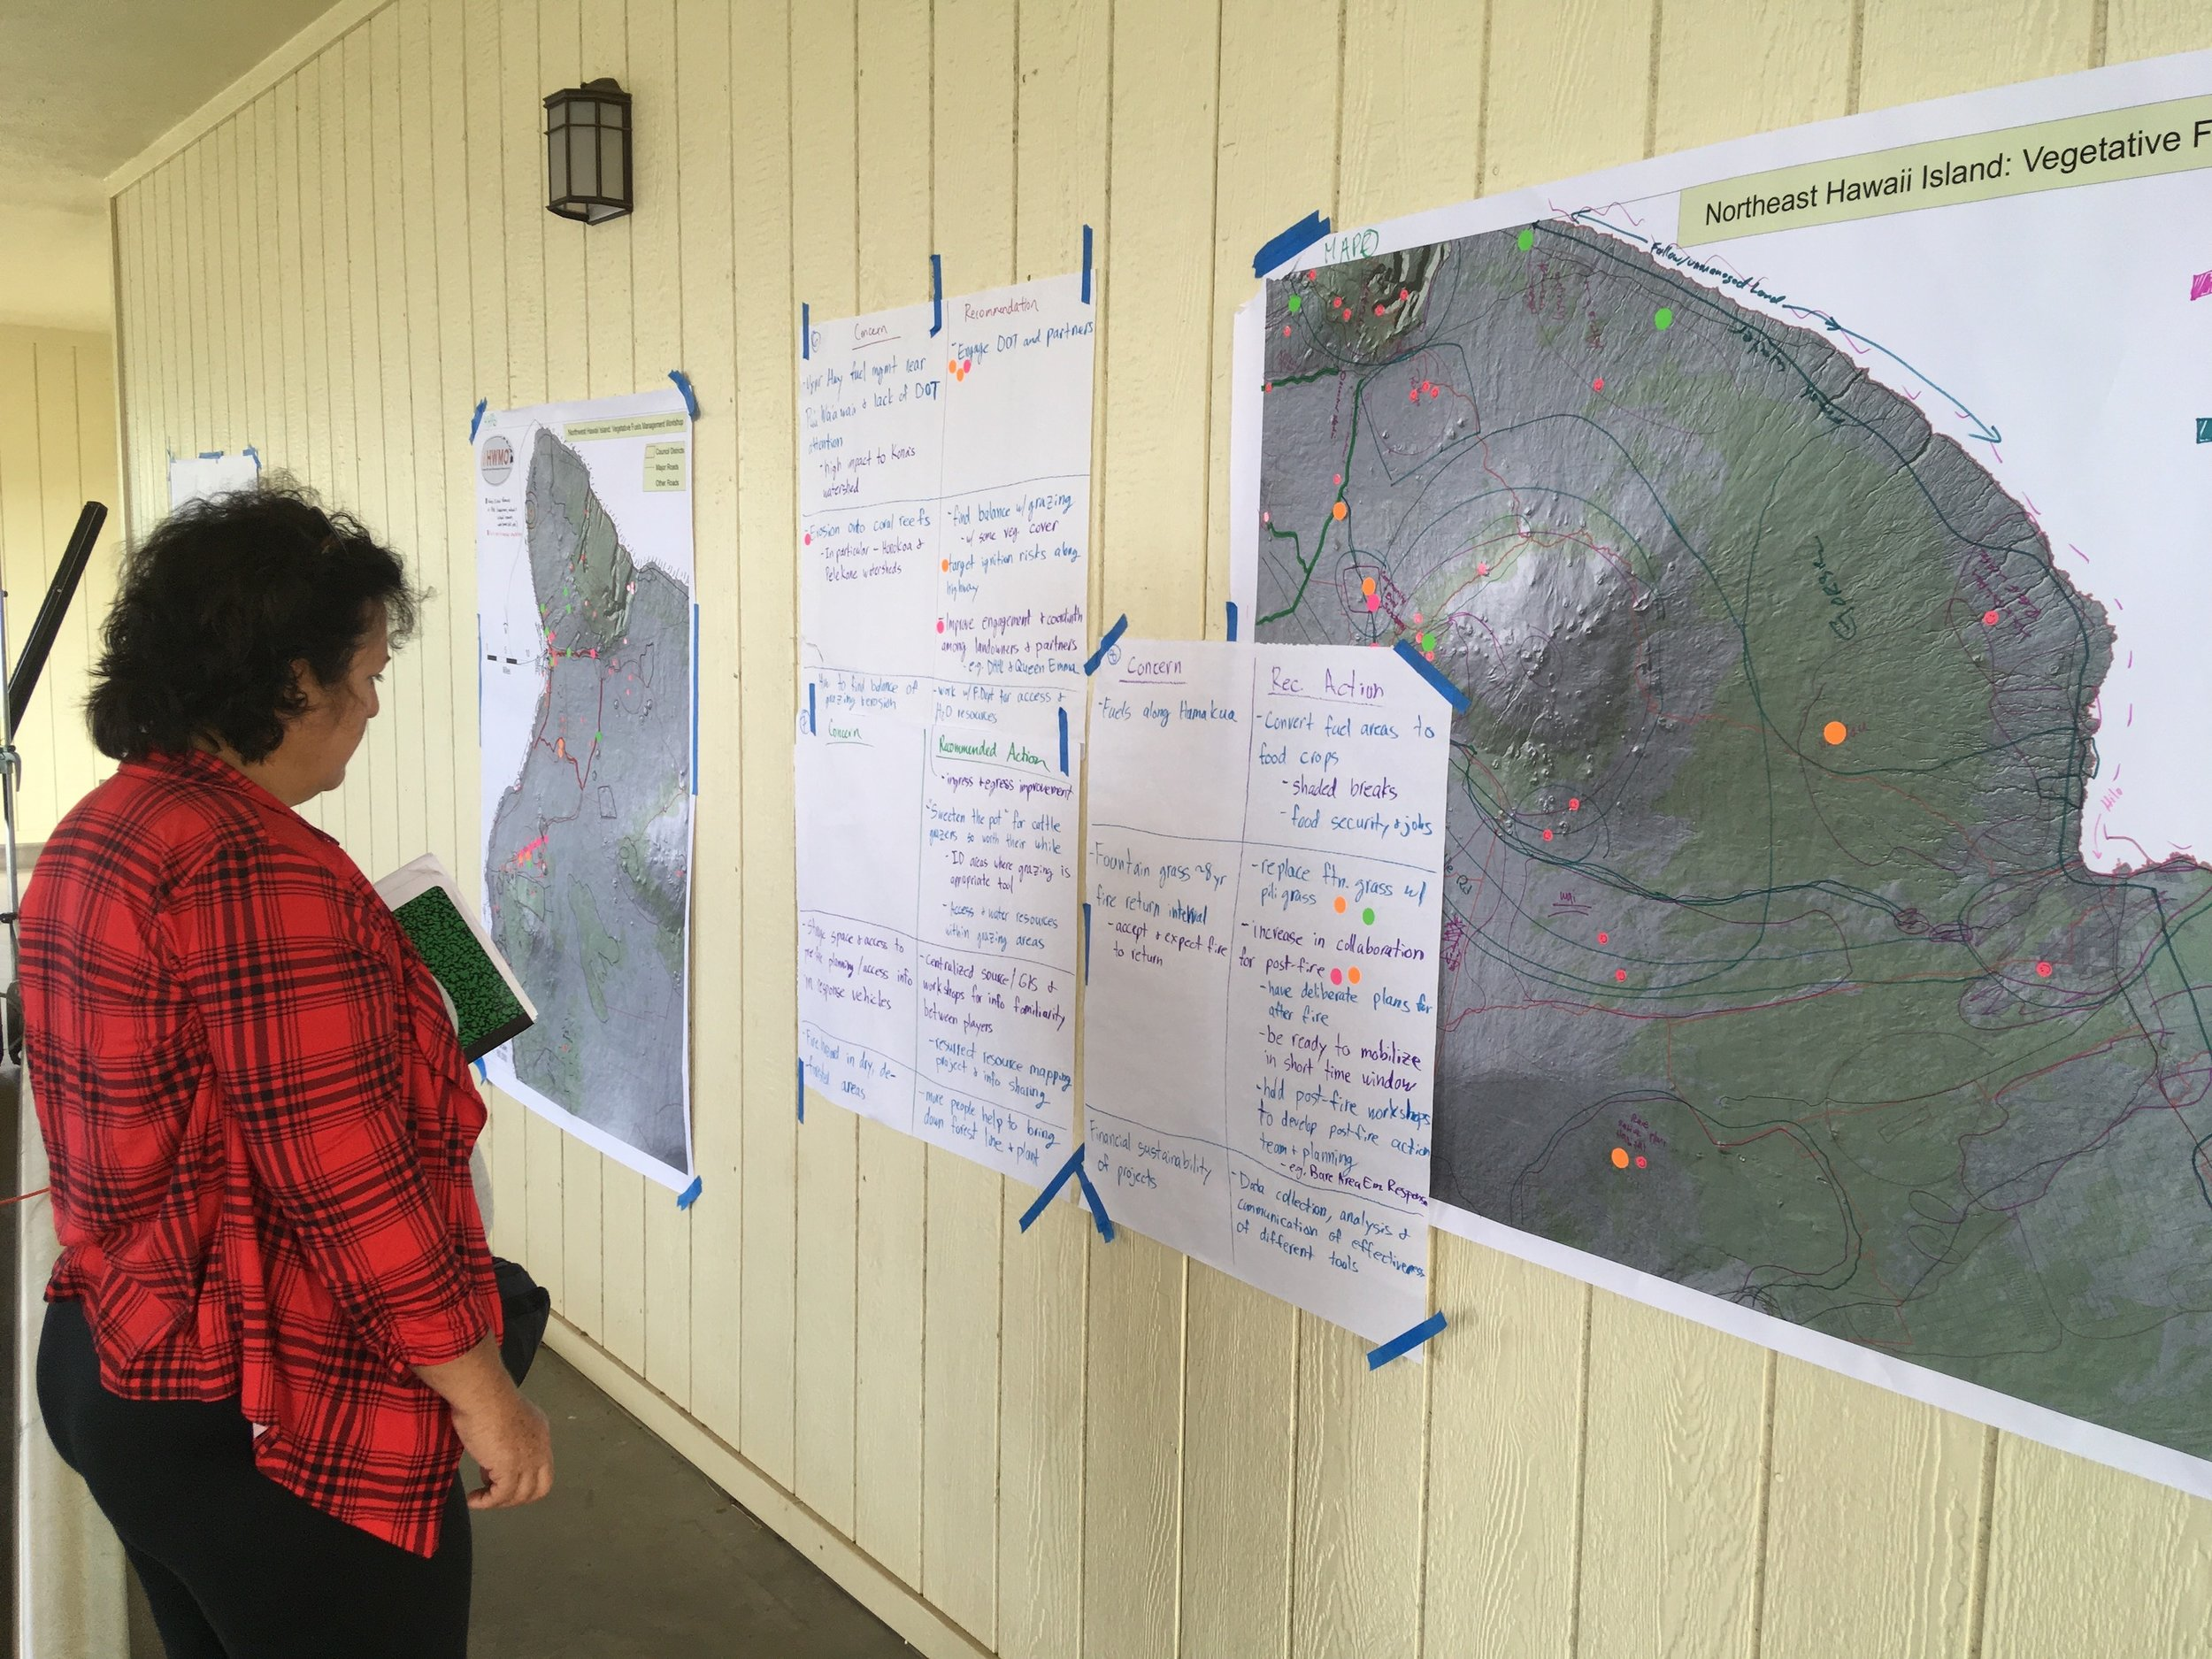 Hawaii Island Kailapa Vegetative Fuels Management Collaborative Action Planning Workshop_2_26_2019_73.jpg